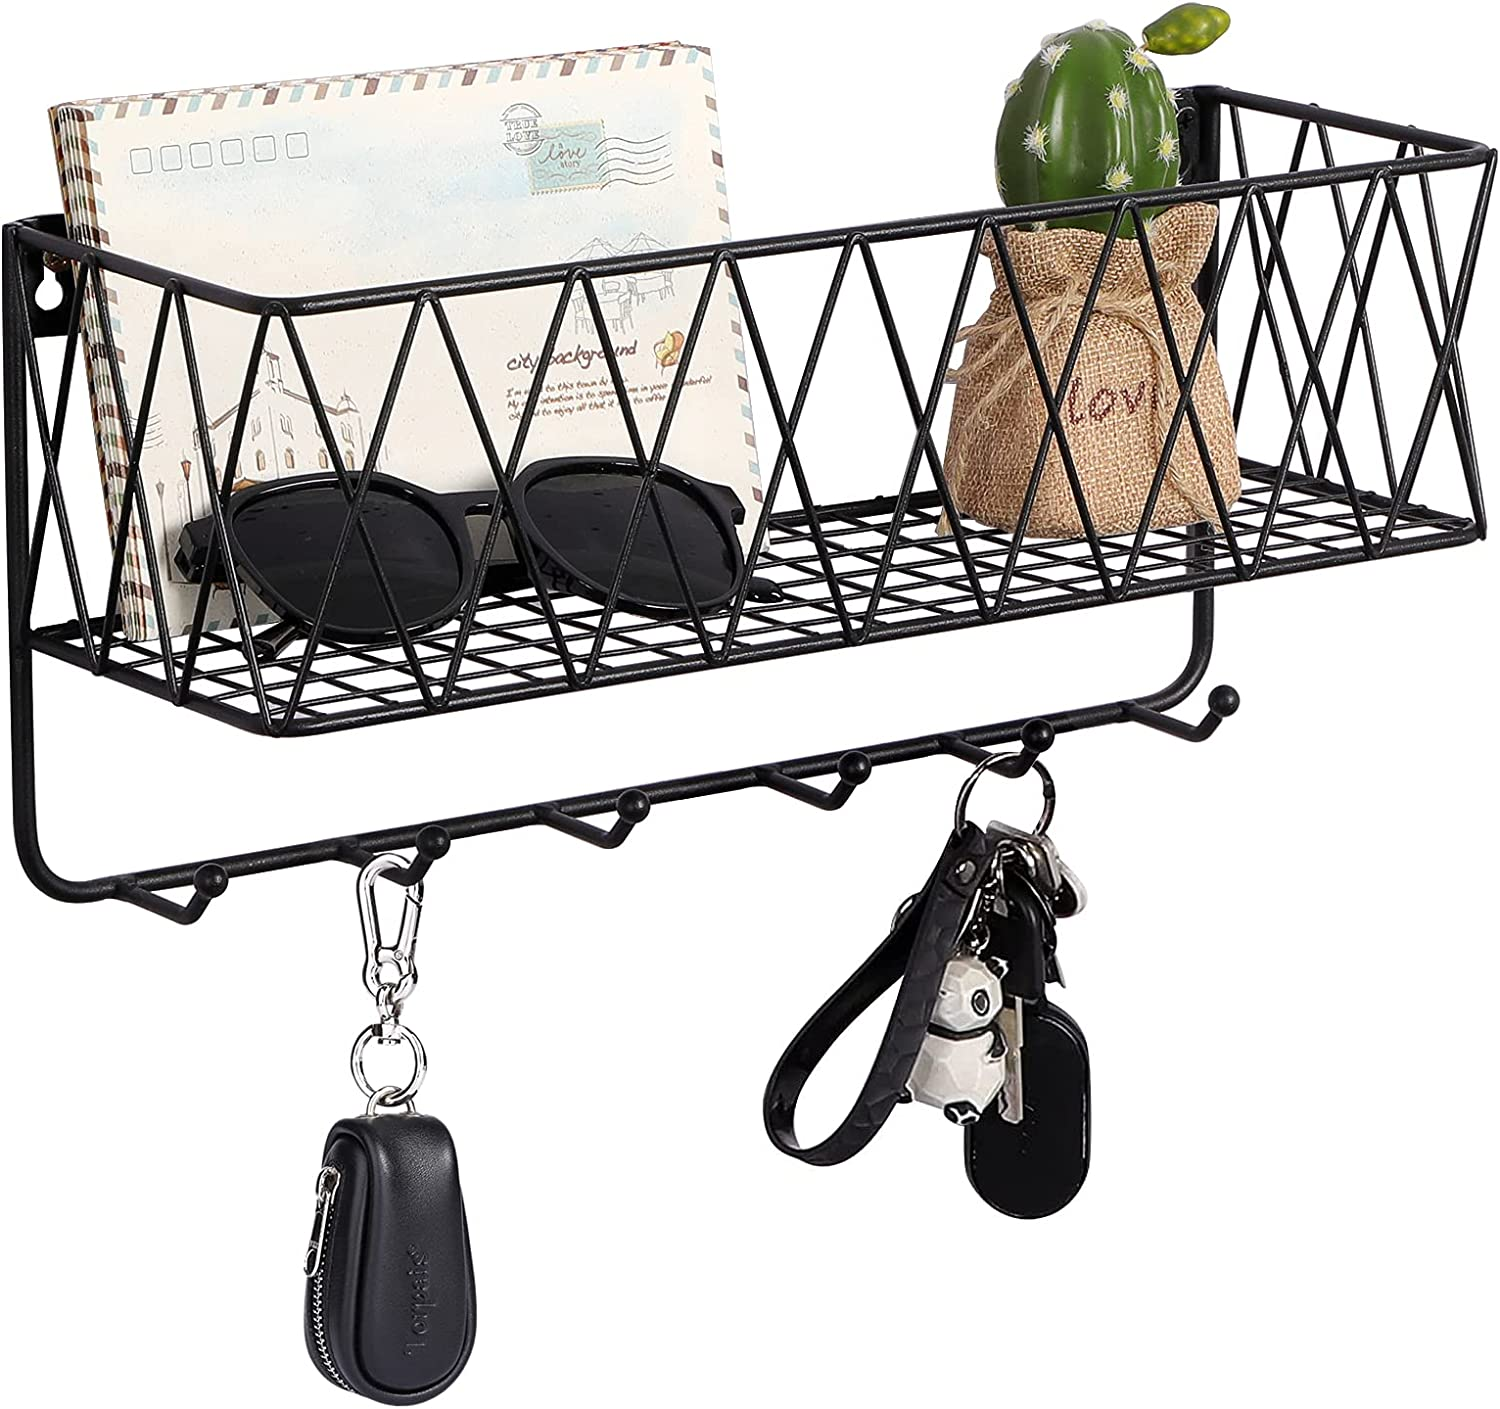 Key and Mail Holder for Wall Mounted Organizer Keys Hanging Rack JA